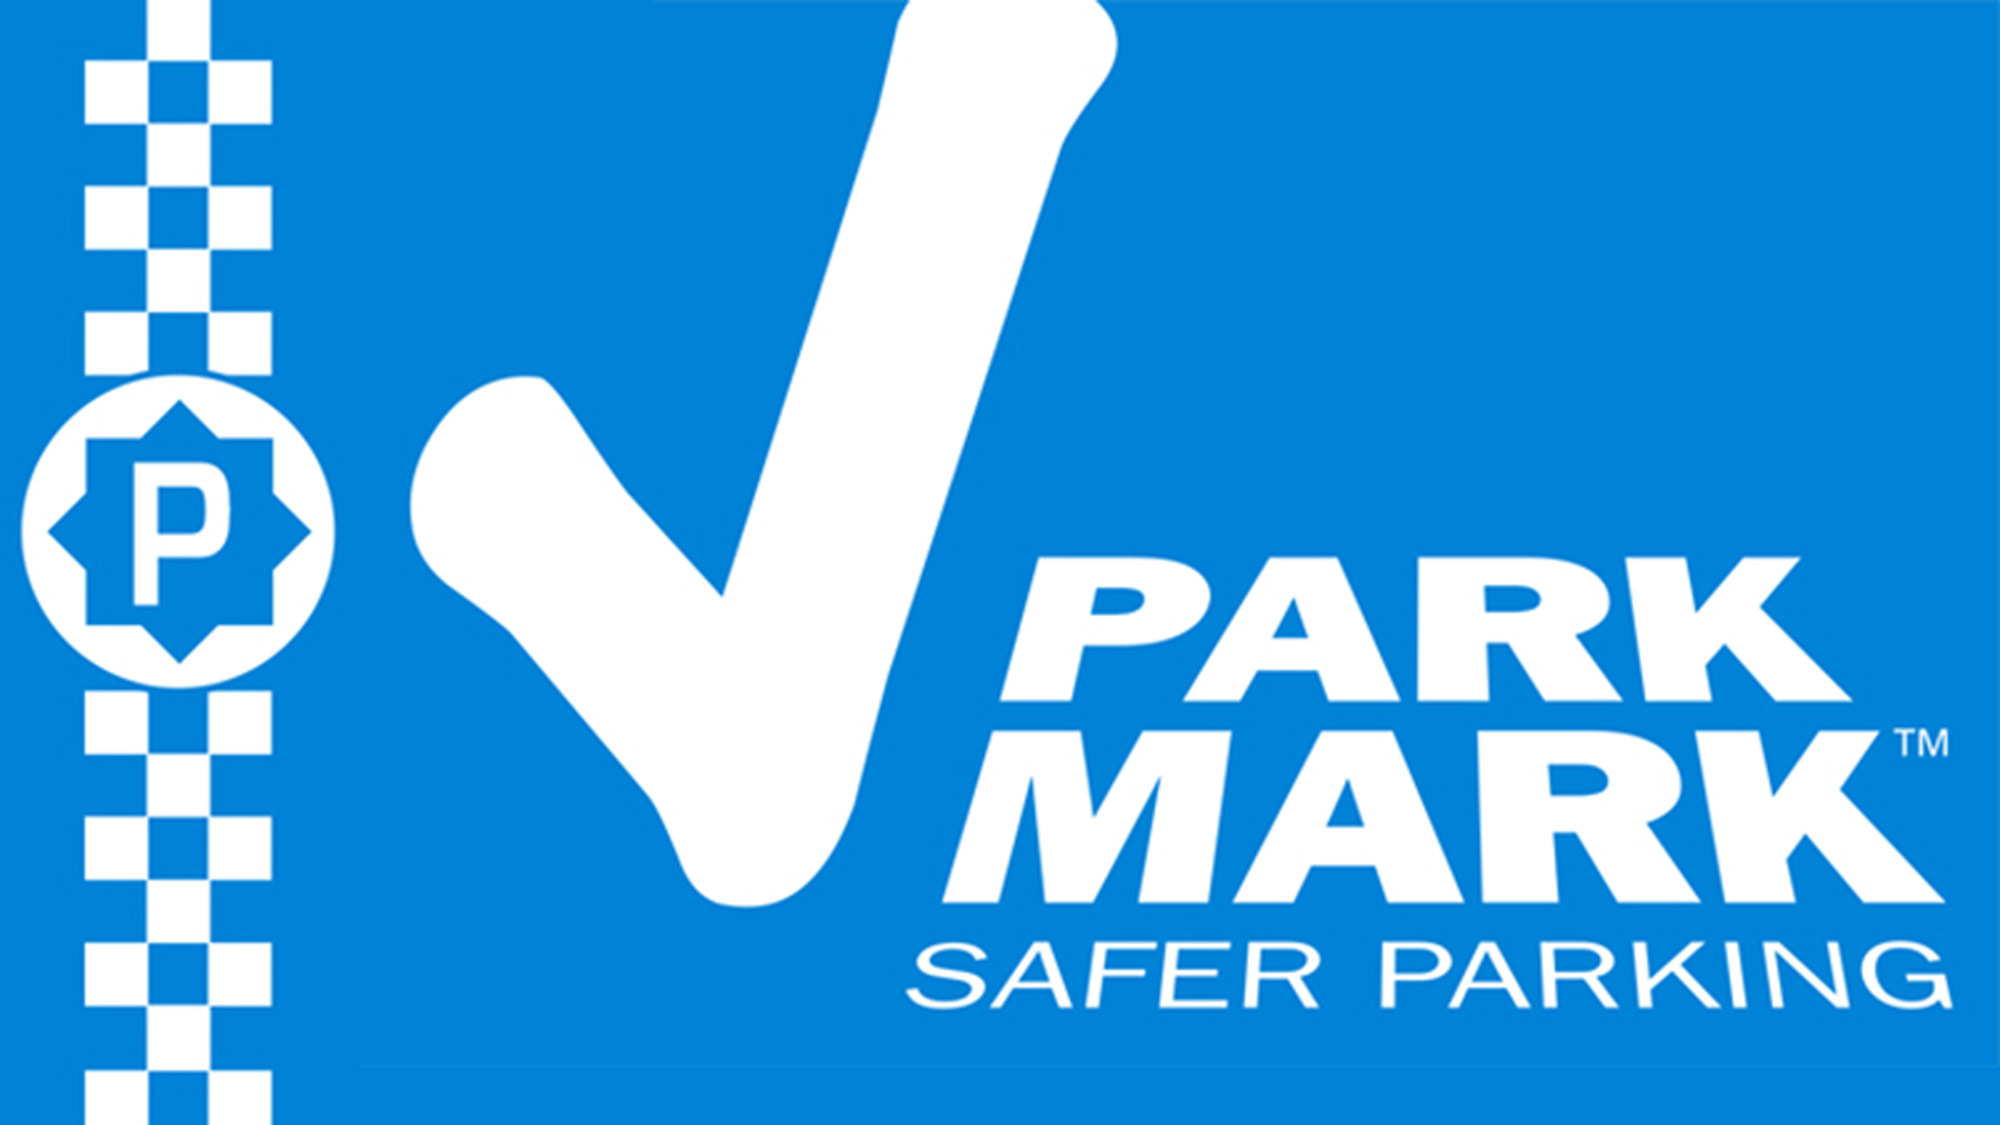 Park mark airport parking i love with a predicted bumper getaway at easter i love meet and greet is urging the public to look for the park mark logo when booking airport parking kristyandbryce Choice Image